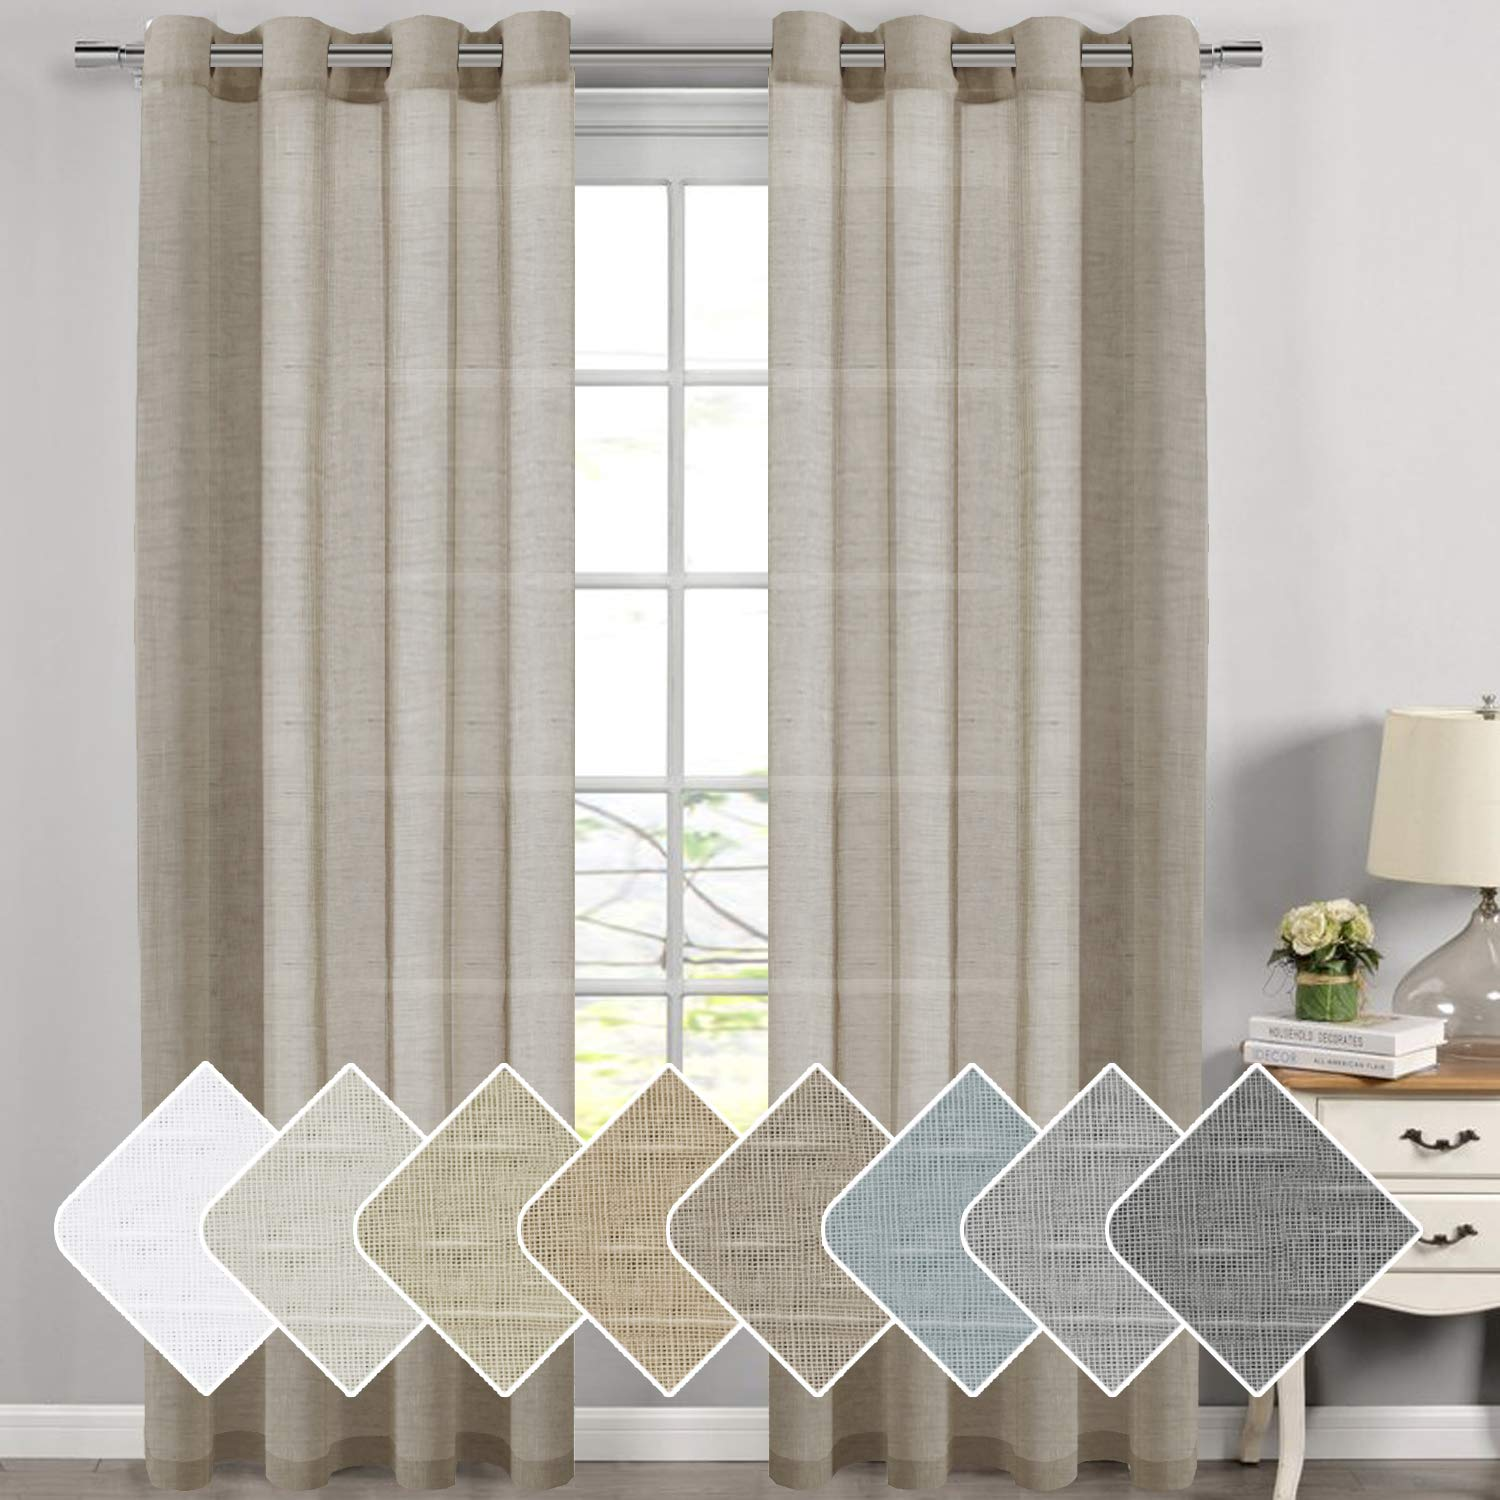 High Class Linen Poly Blended Window Curtain Panels Energy Efficient Nickel Grommet Sheer Curtains for Bedroom Set of 2,52 W x 108 L-White